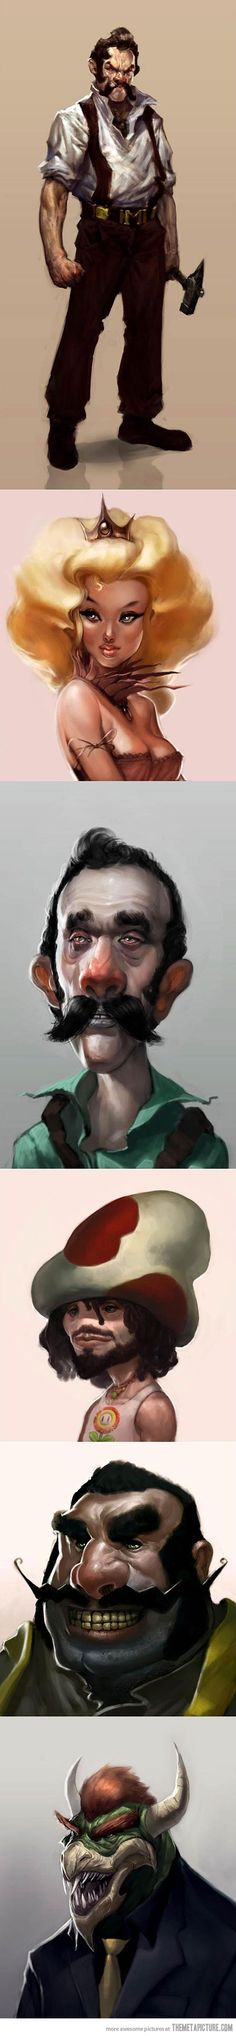 Realistic Mario characters